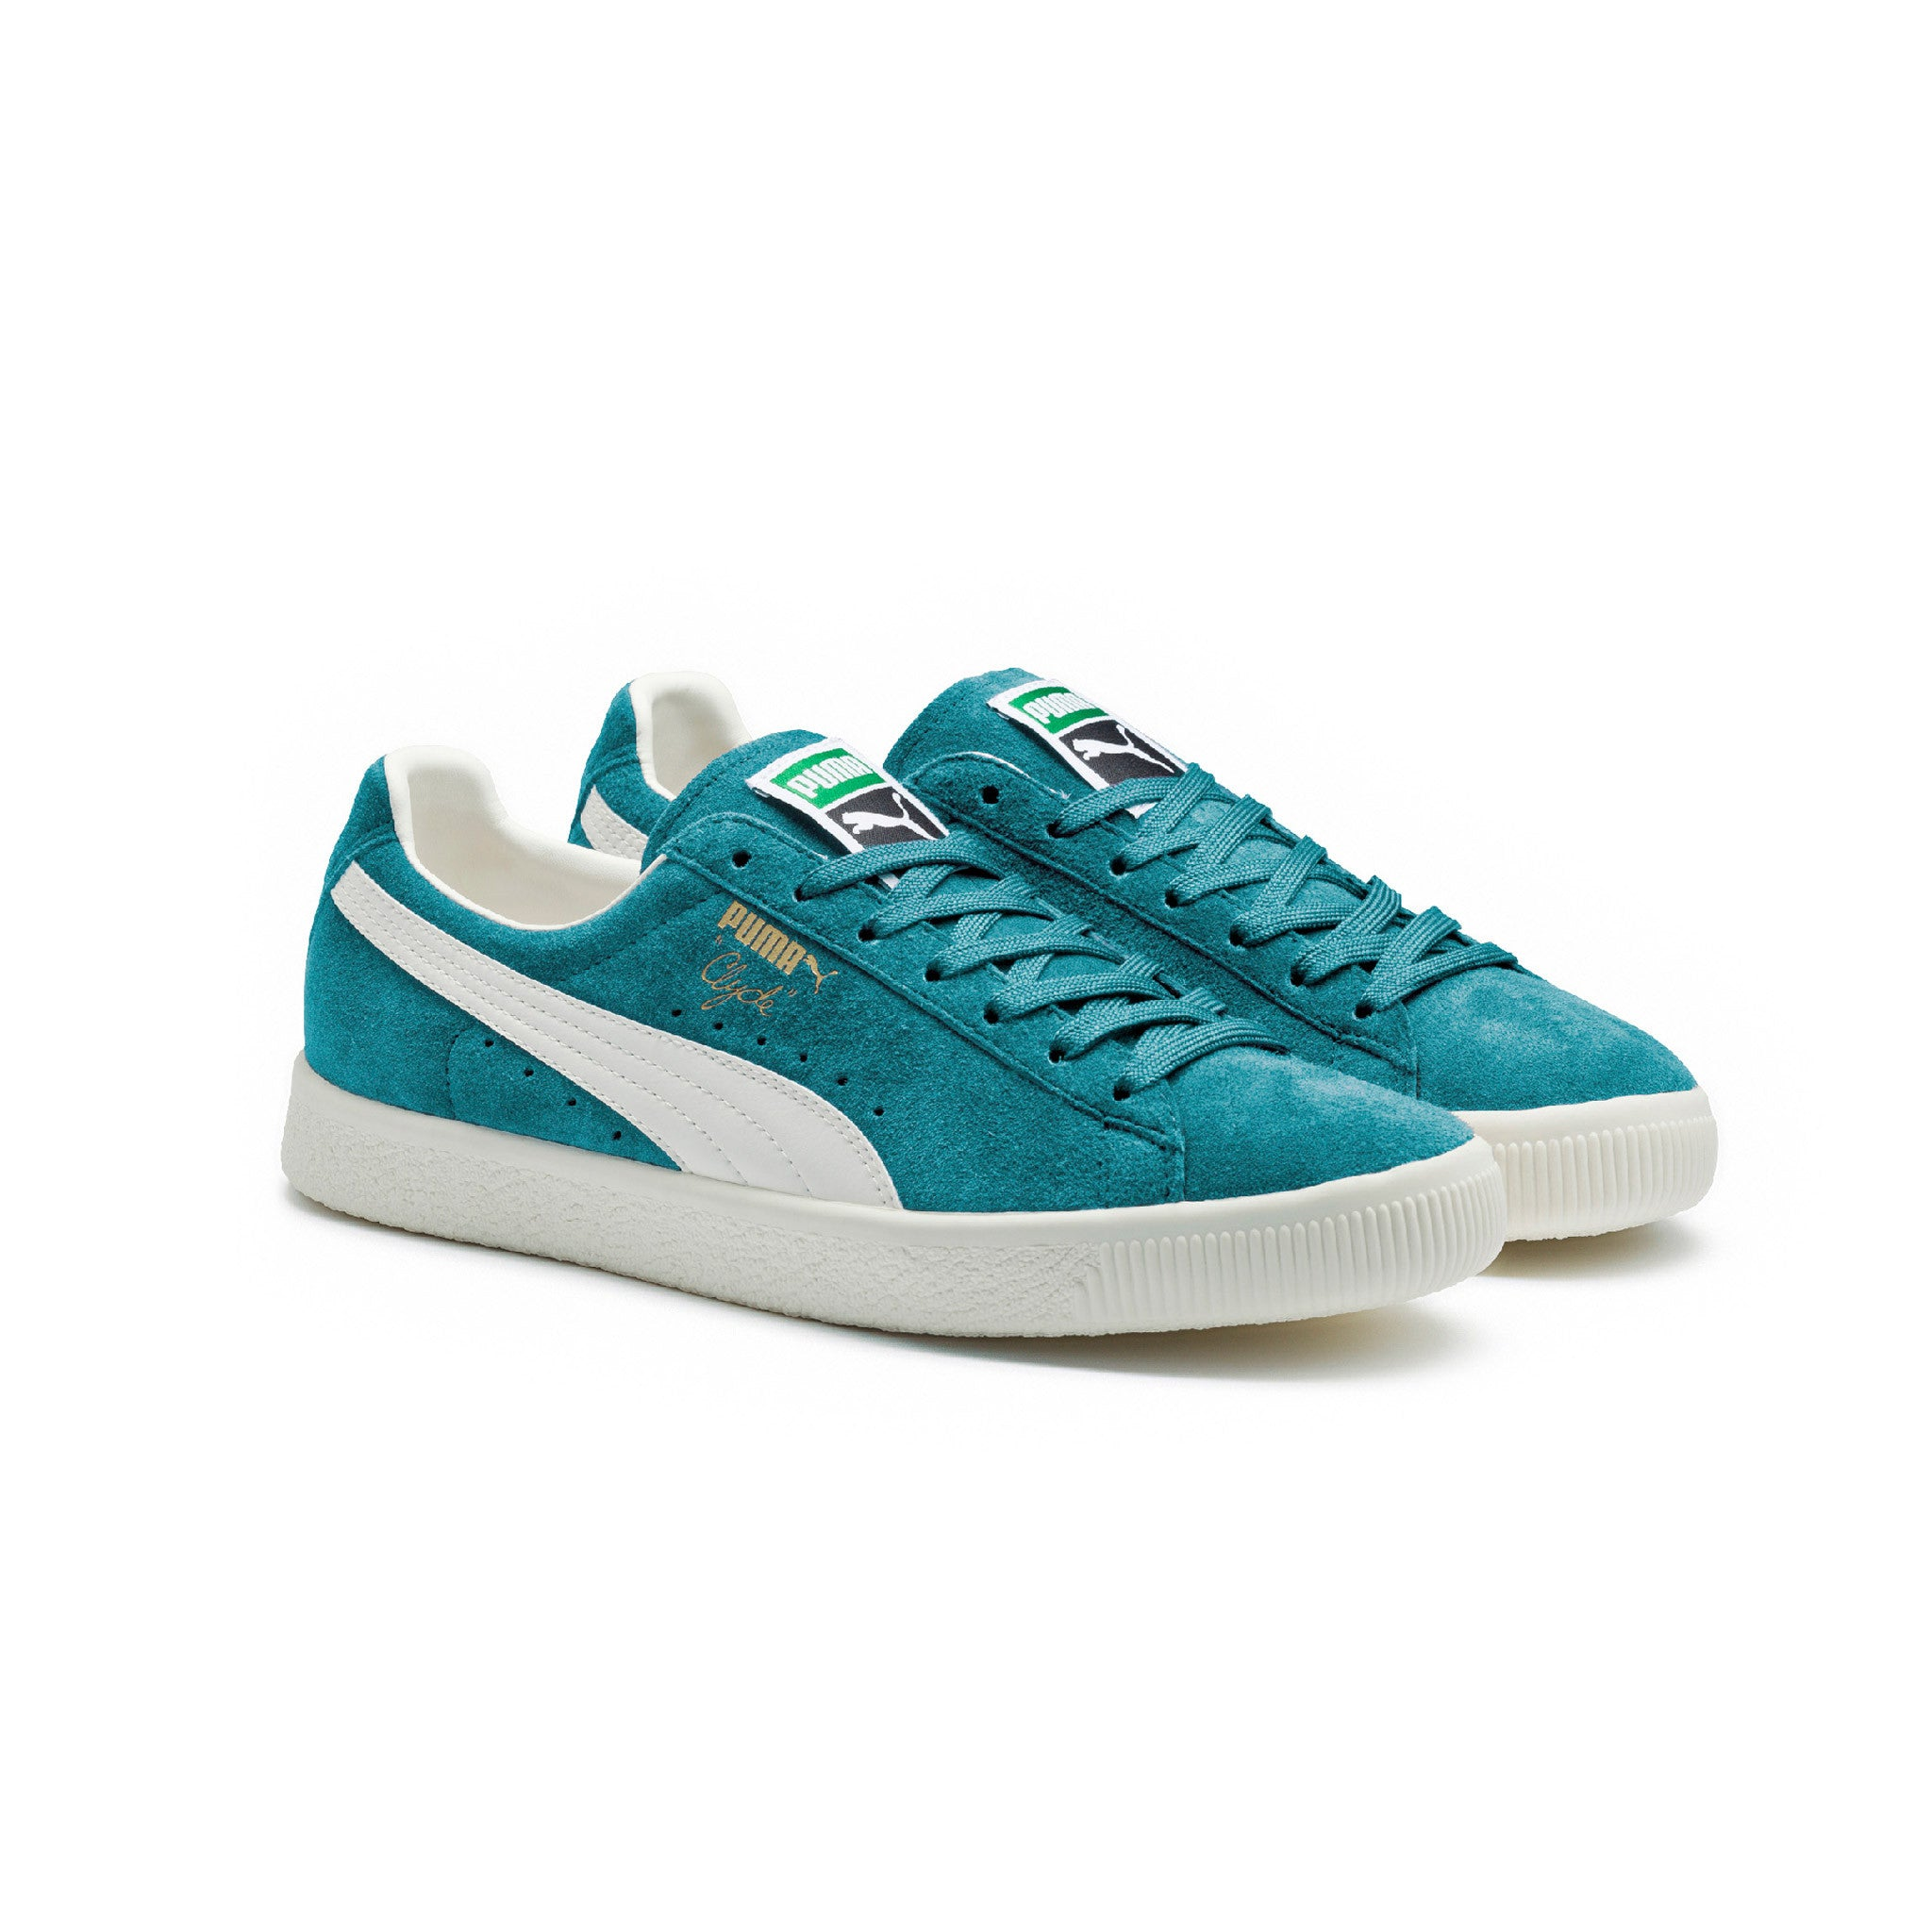 Clyde Premium Core Puma Sneakers Blue Angled View